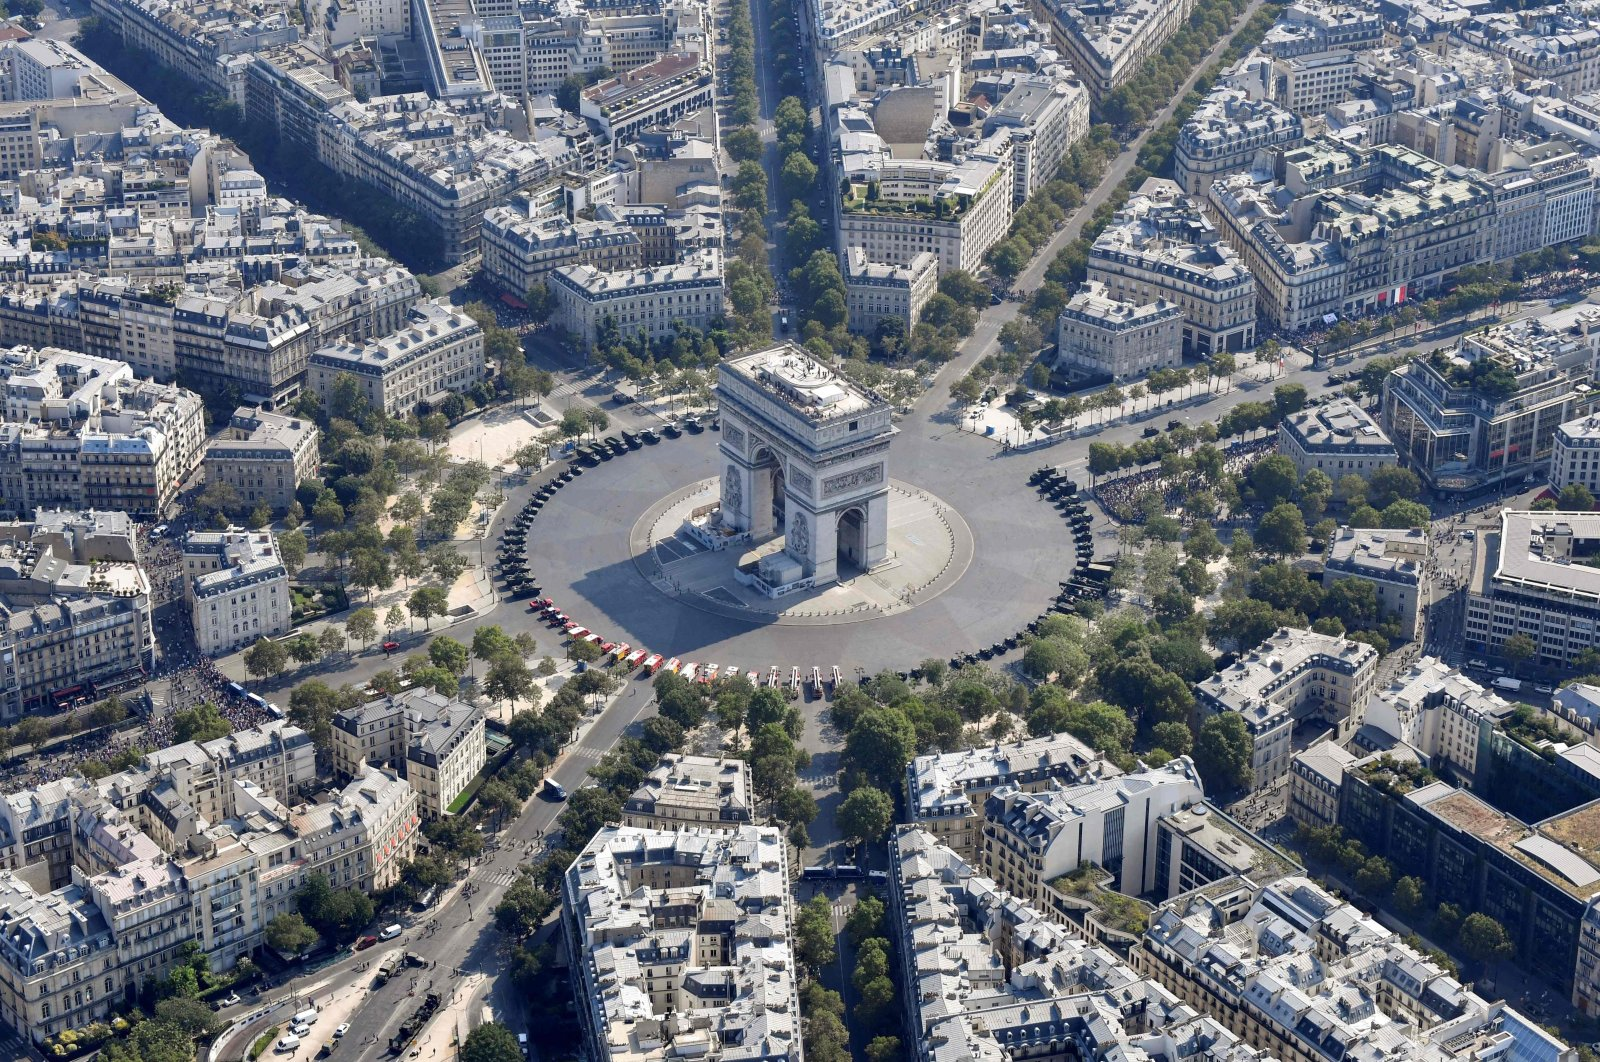 This file photo taken on July 14, 2018 shows an aerial view of the Arc de Triomphe prior to the annual Bastille Day military parade on the Champs-Elysees avenue in Paris. (AFP Photo)